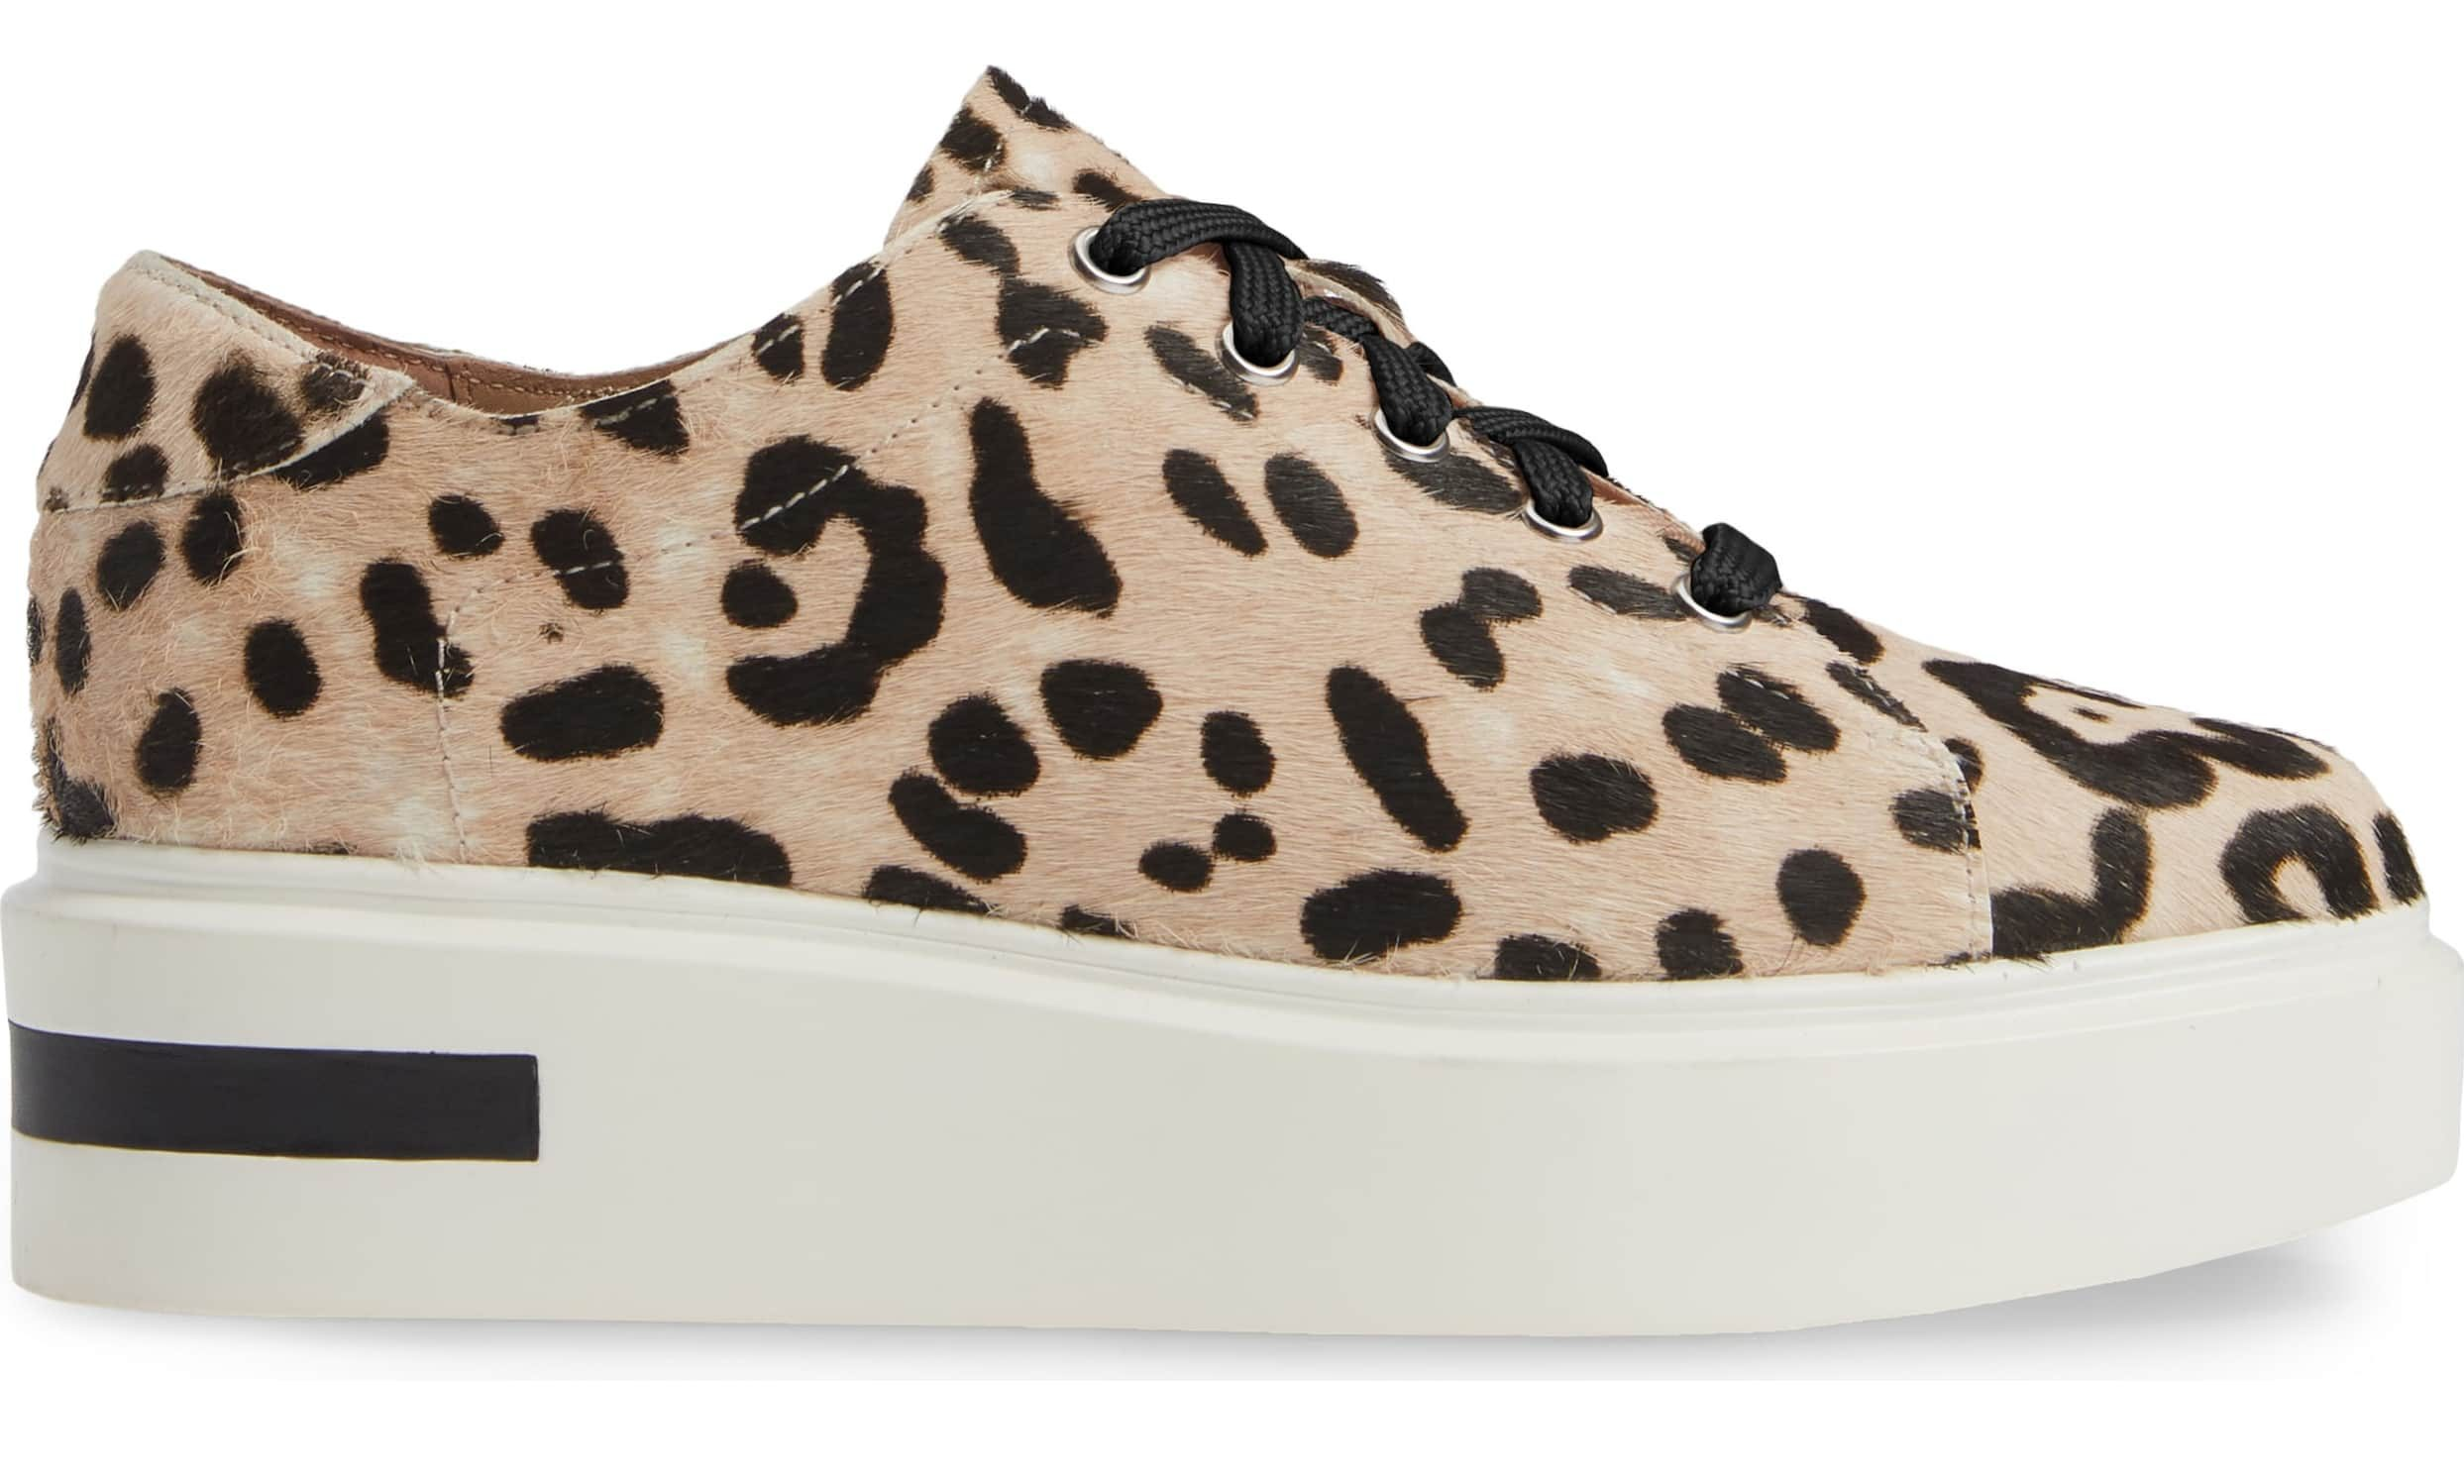 We're Stepping Up Our Sneaker Game With These Animal Print Platforms